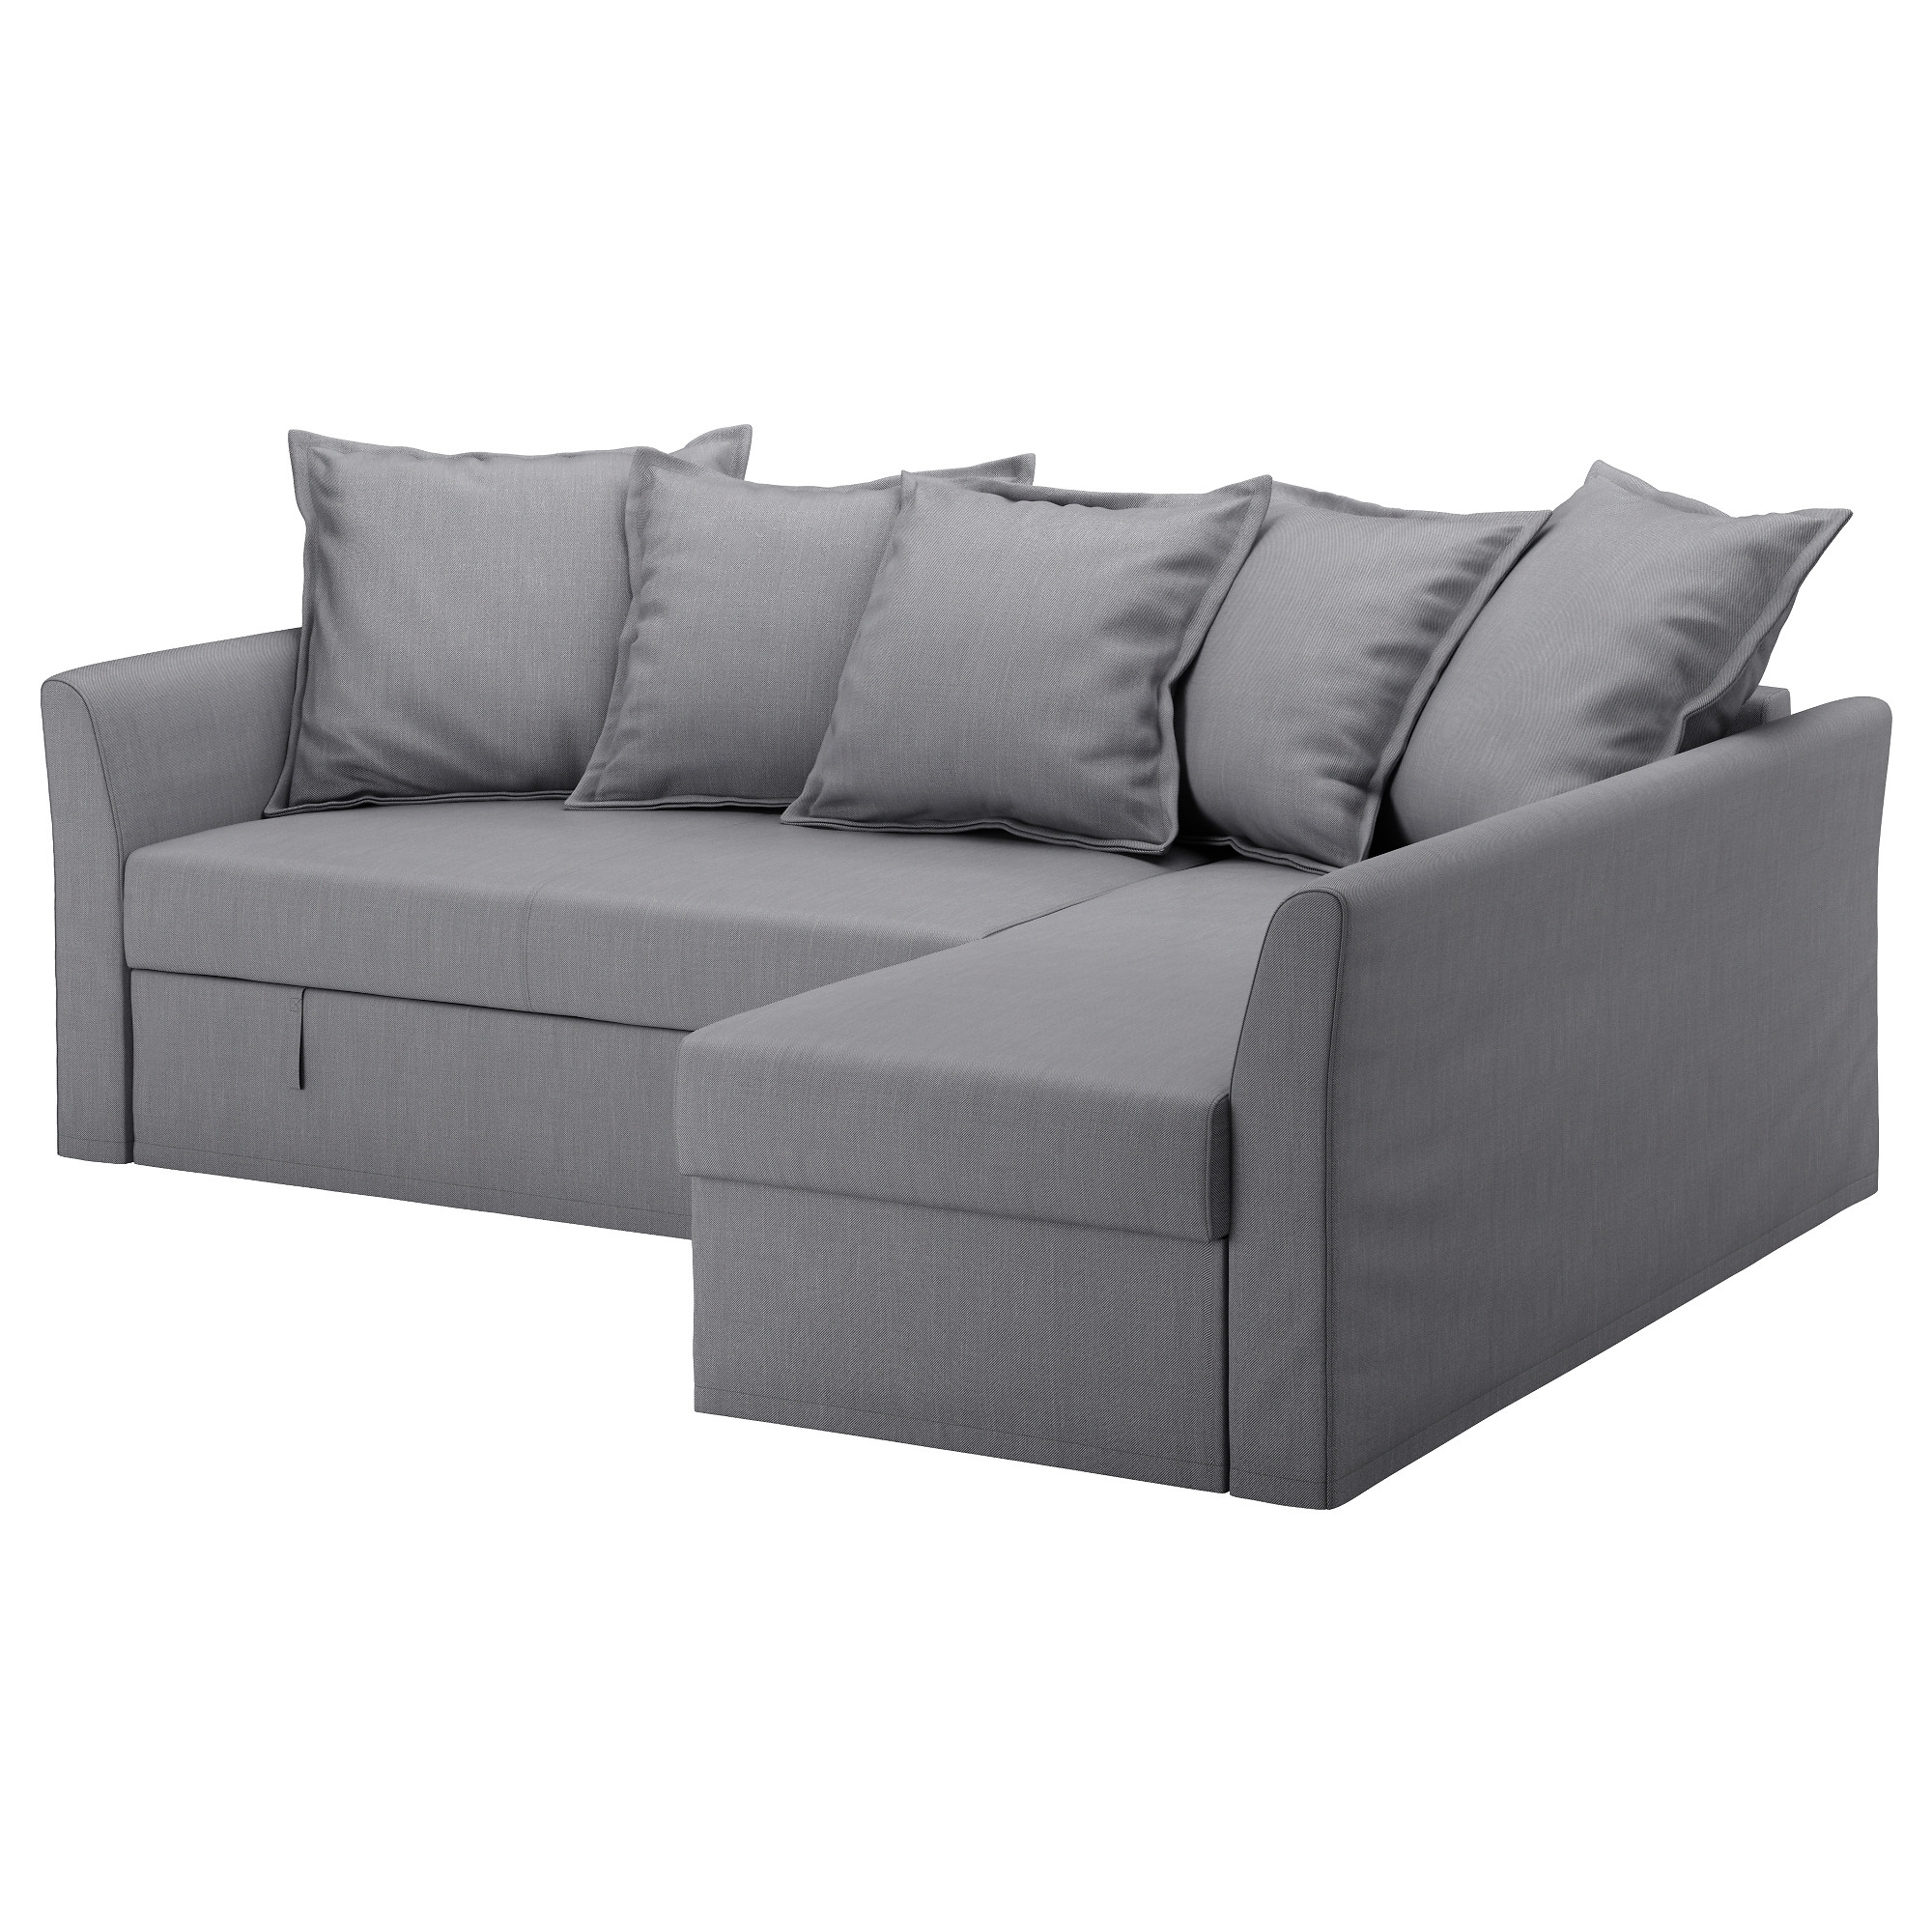 Top 15 Sectional Sleeper Sofas Ikea For Small Houses – Video And Pertaining To Ikea Sectional Sleeper Sofas (Image 10 of 10)